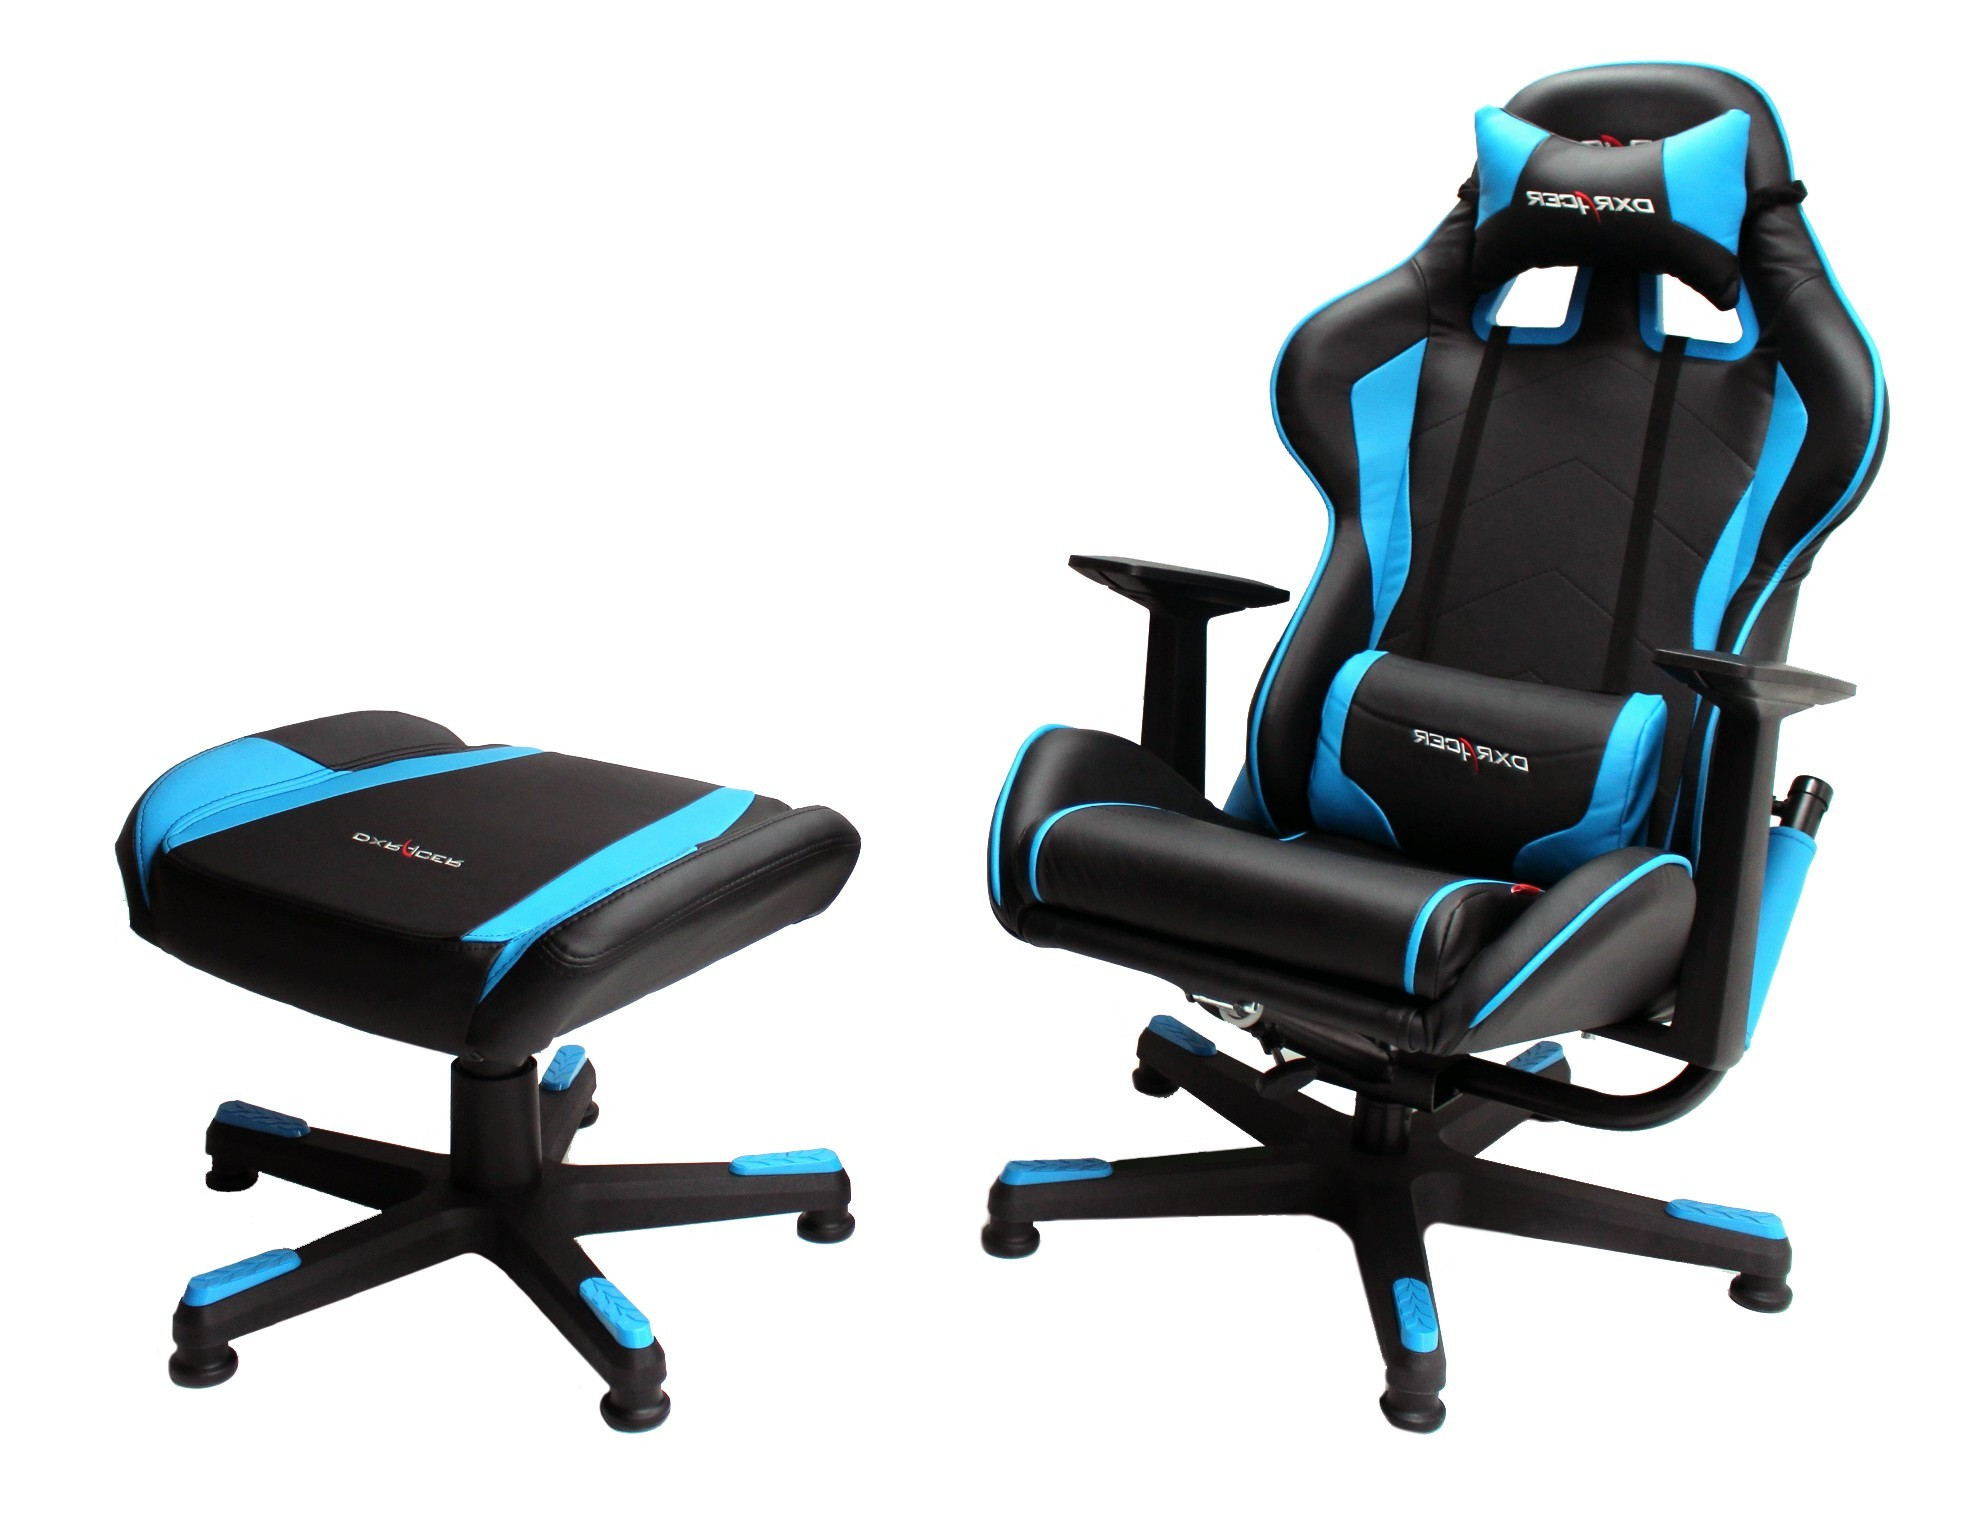 Dxr Chair Dxr Gaming Chair Top Blog For Chair Review